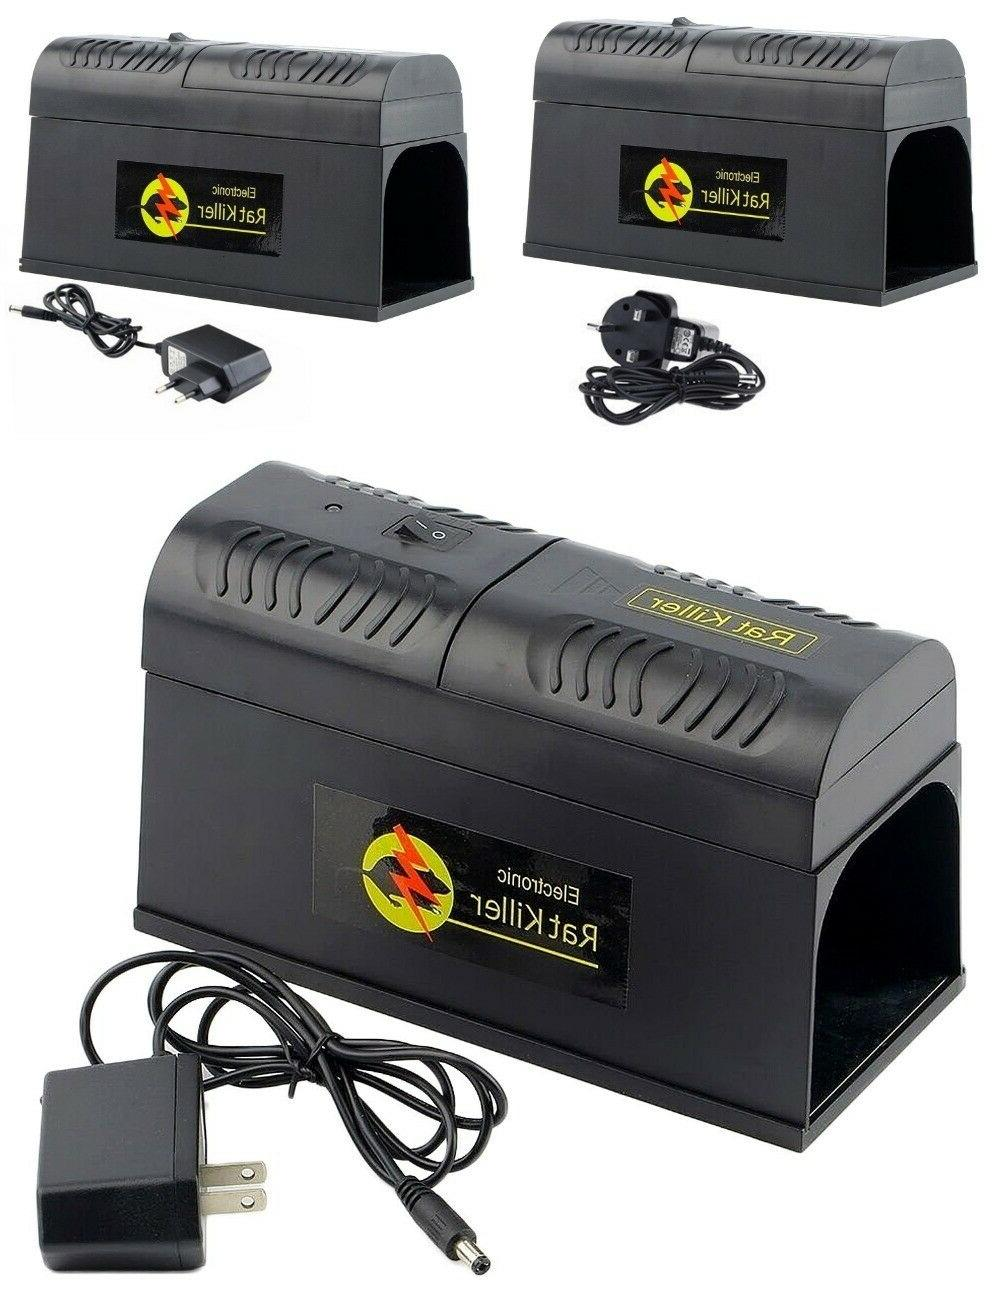 Electric Mouse Rat Killer For Control